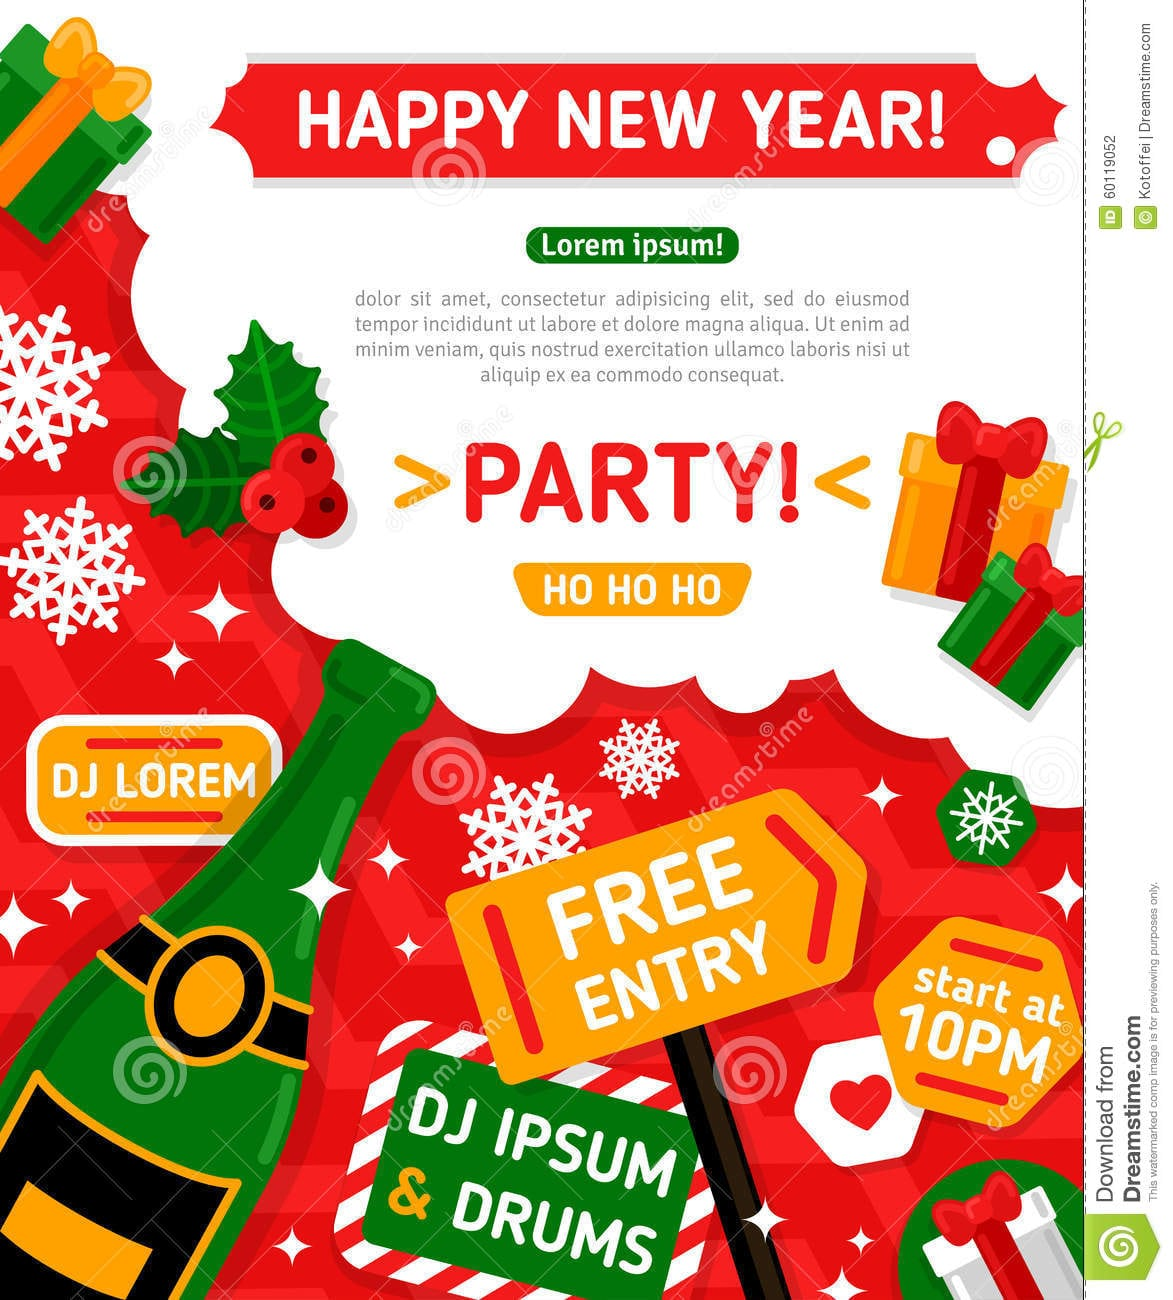 Merry Christmas And Happy New Year Party Stock Photo